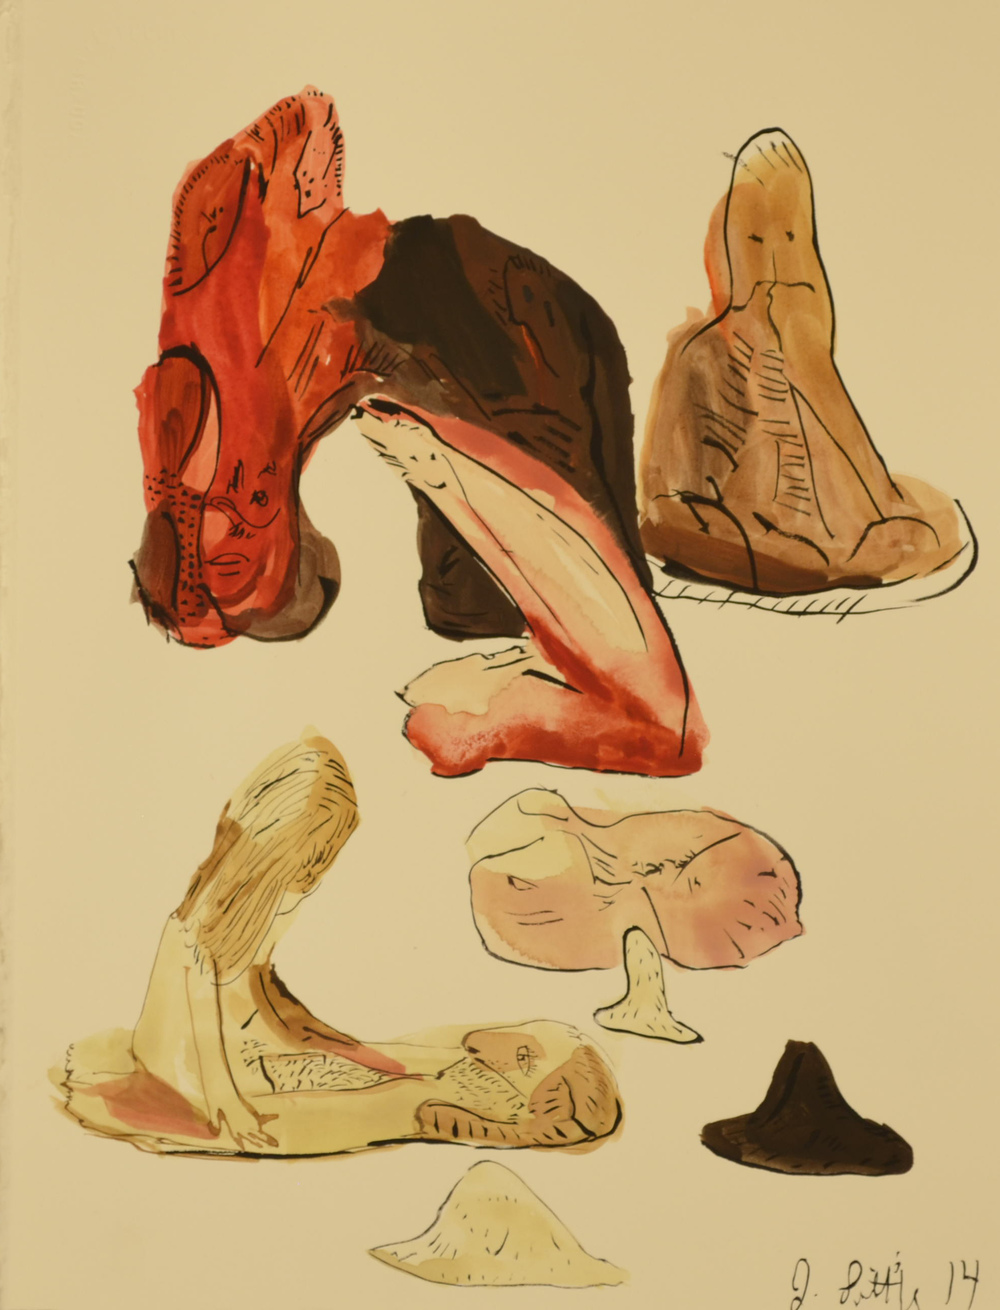 Still Life with Red Figure, 11 x 15 inches,  watercolor on paper, 2014.